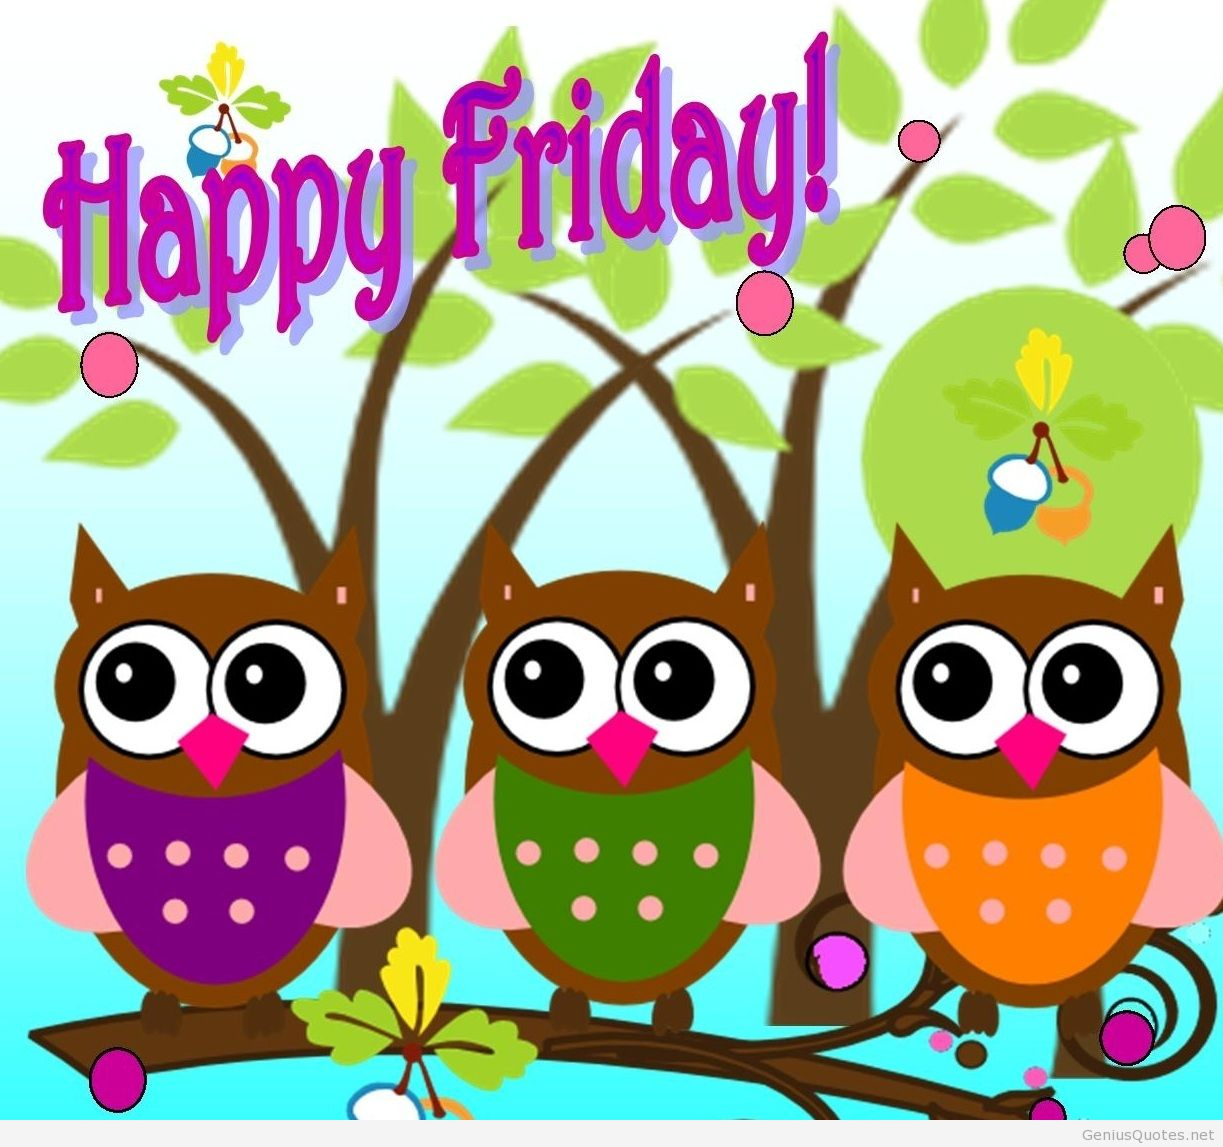 Its Happy Friday Clipart #1